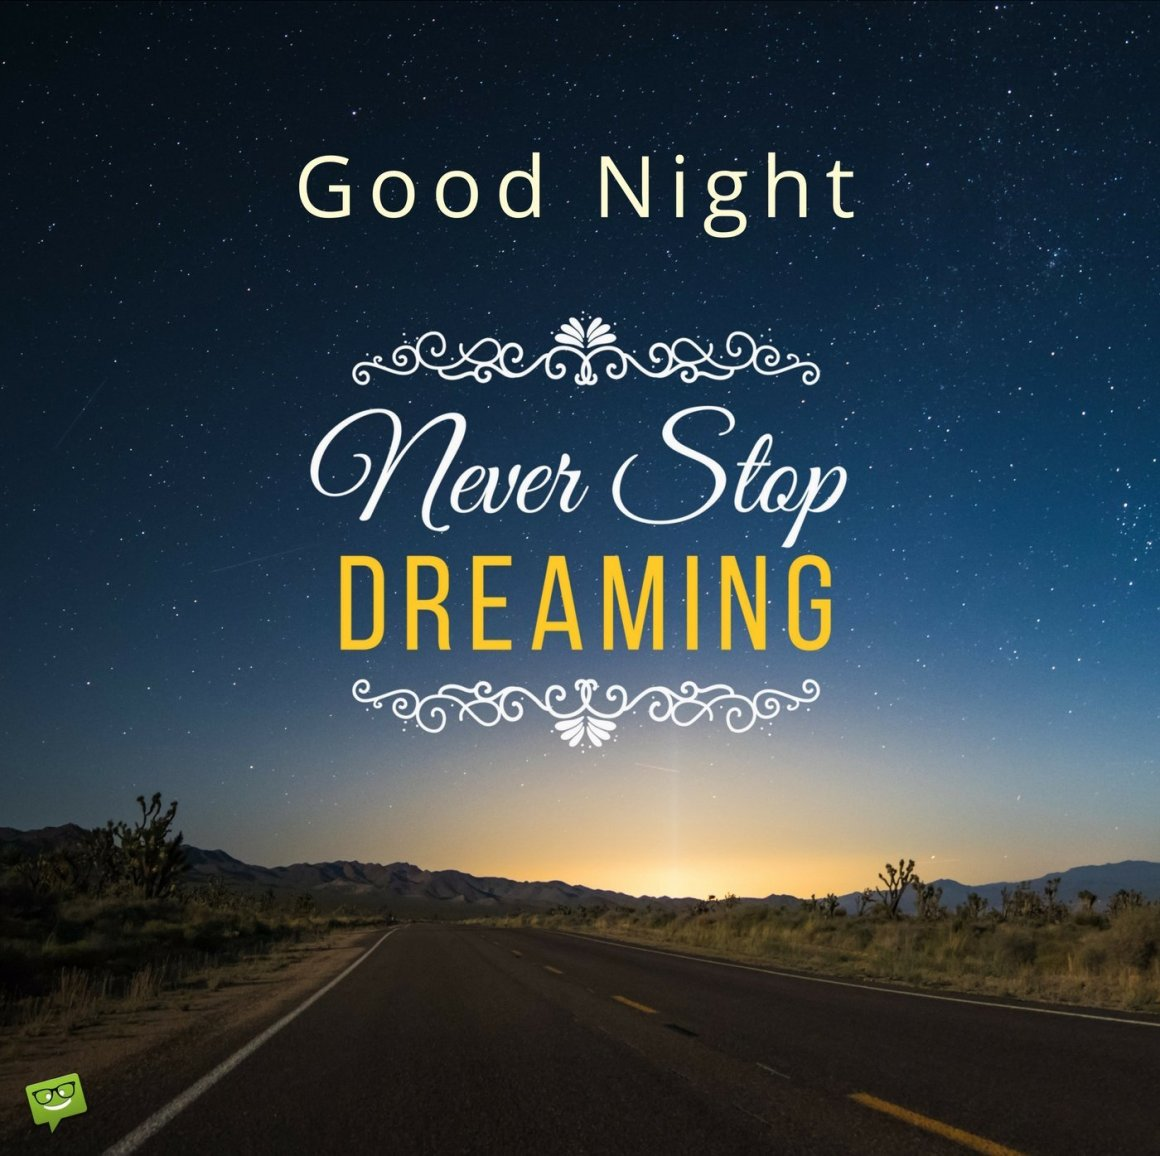 Famous & Motivational Goodnight Quotes With images